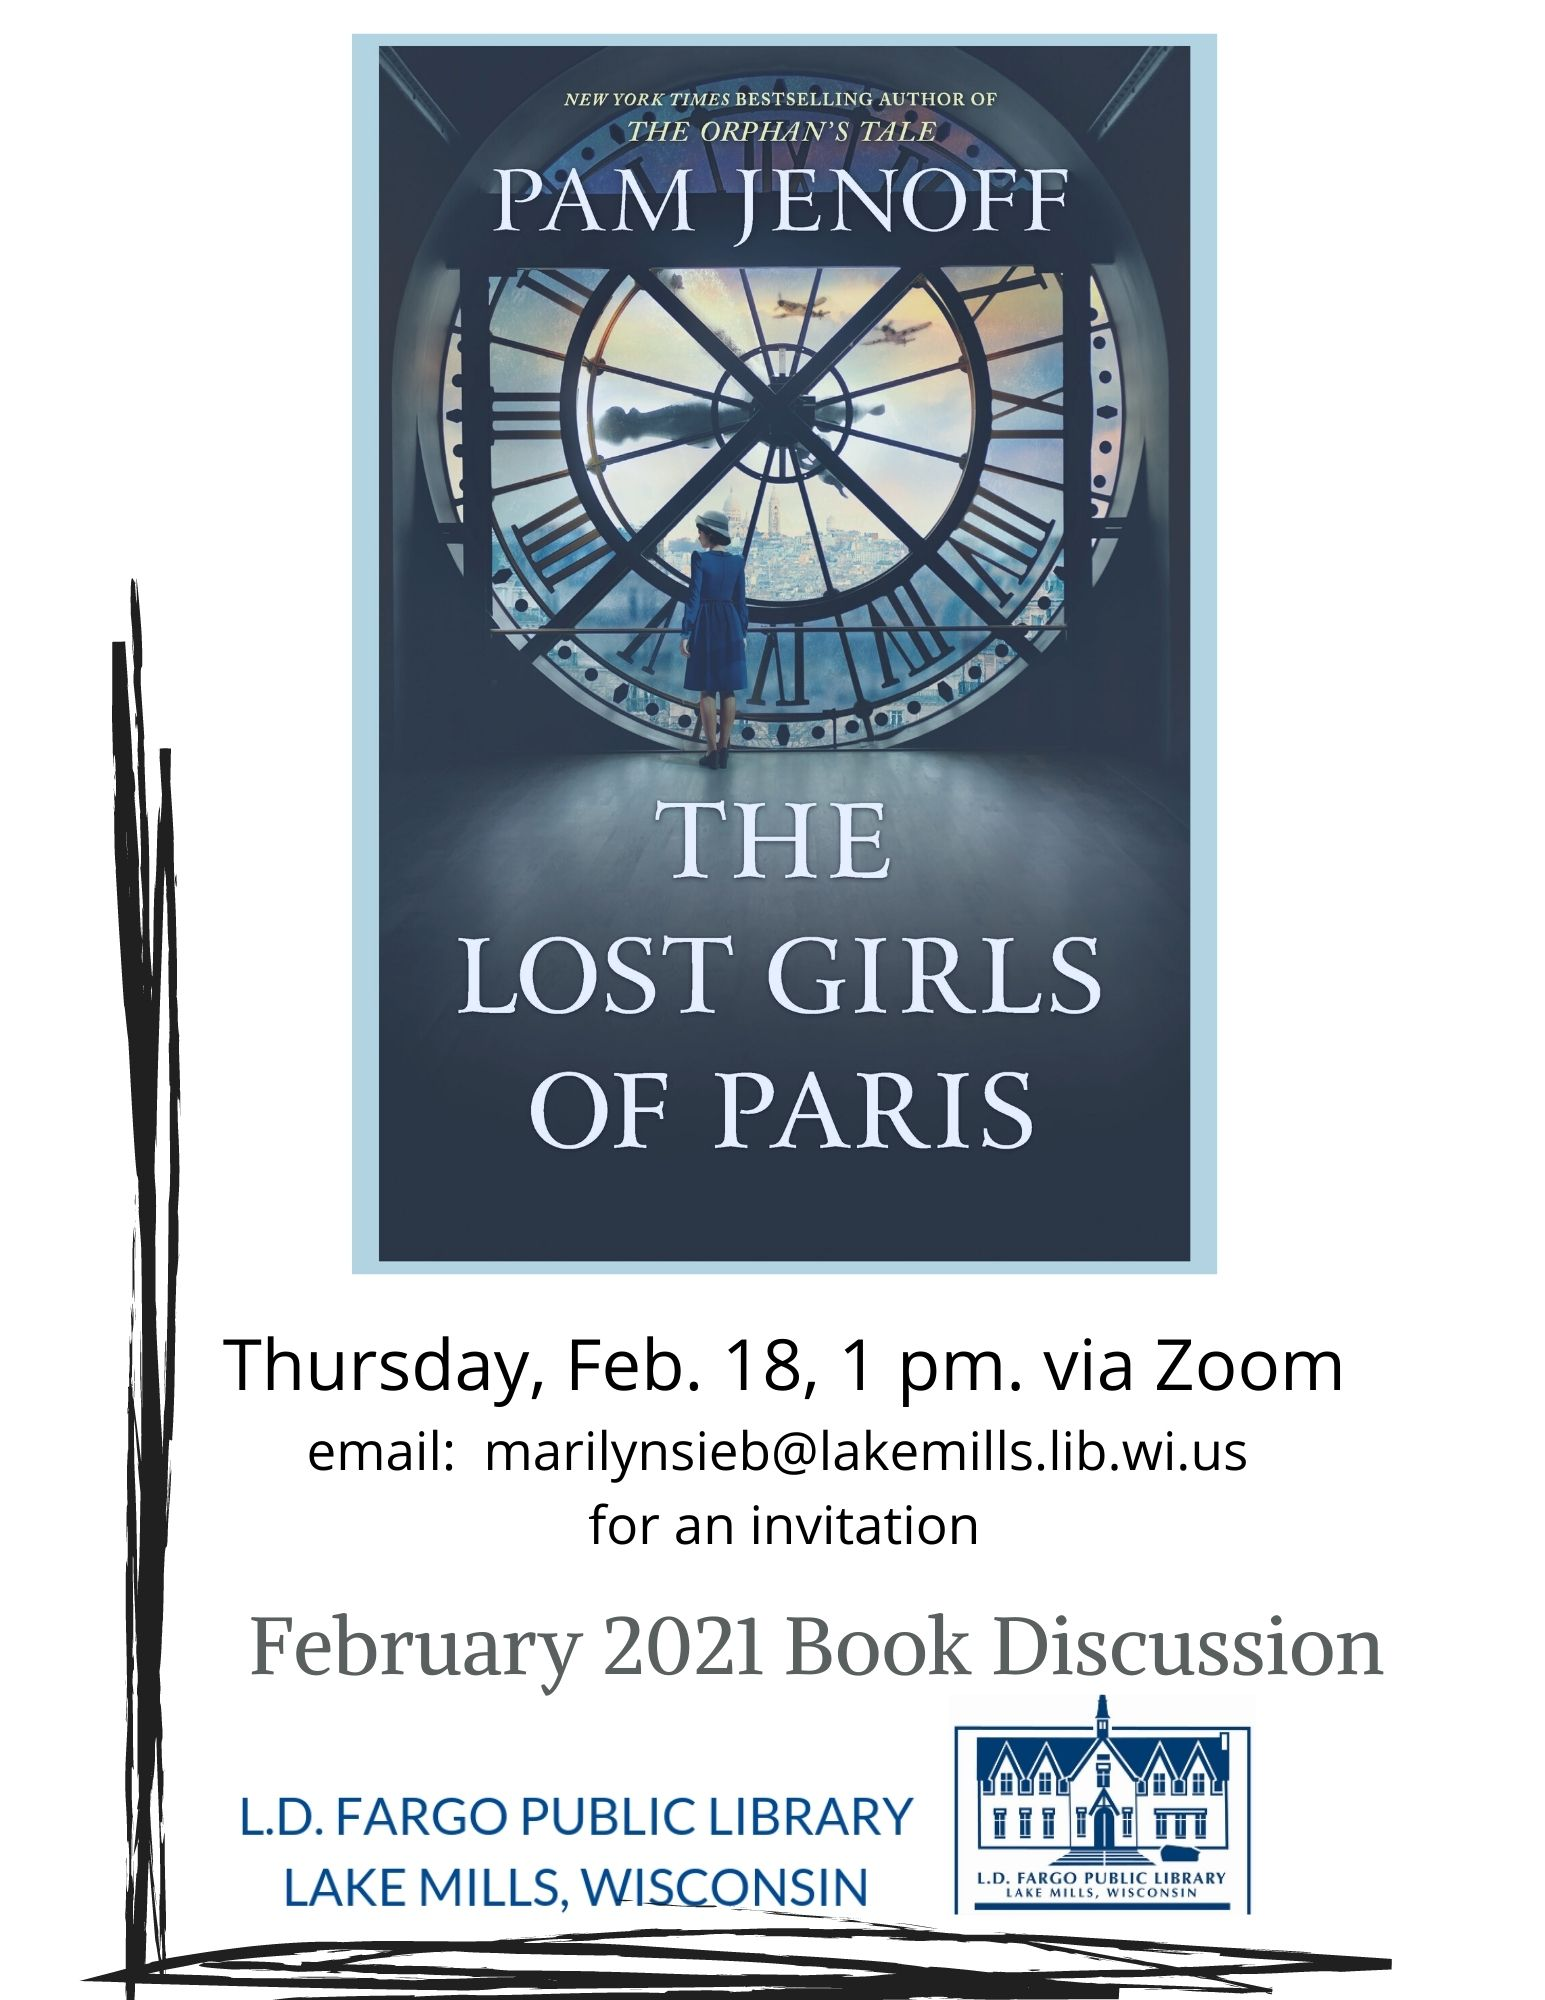 Book discussion, The Lost Girls of Paris by Pam Jenoff. Thursday, Feb 18 1pm on Zoom. If you would like an invitation, send an email to marilynsieb@lakemills.lib.wi.us